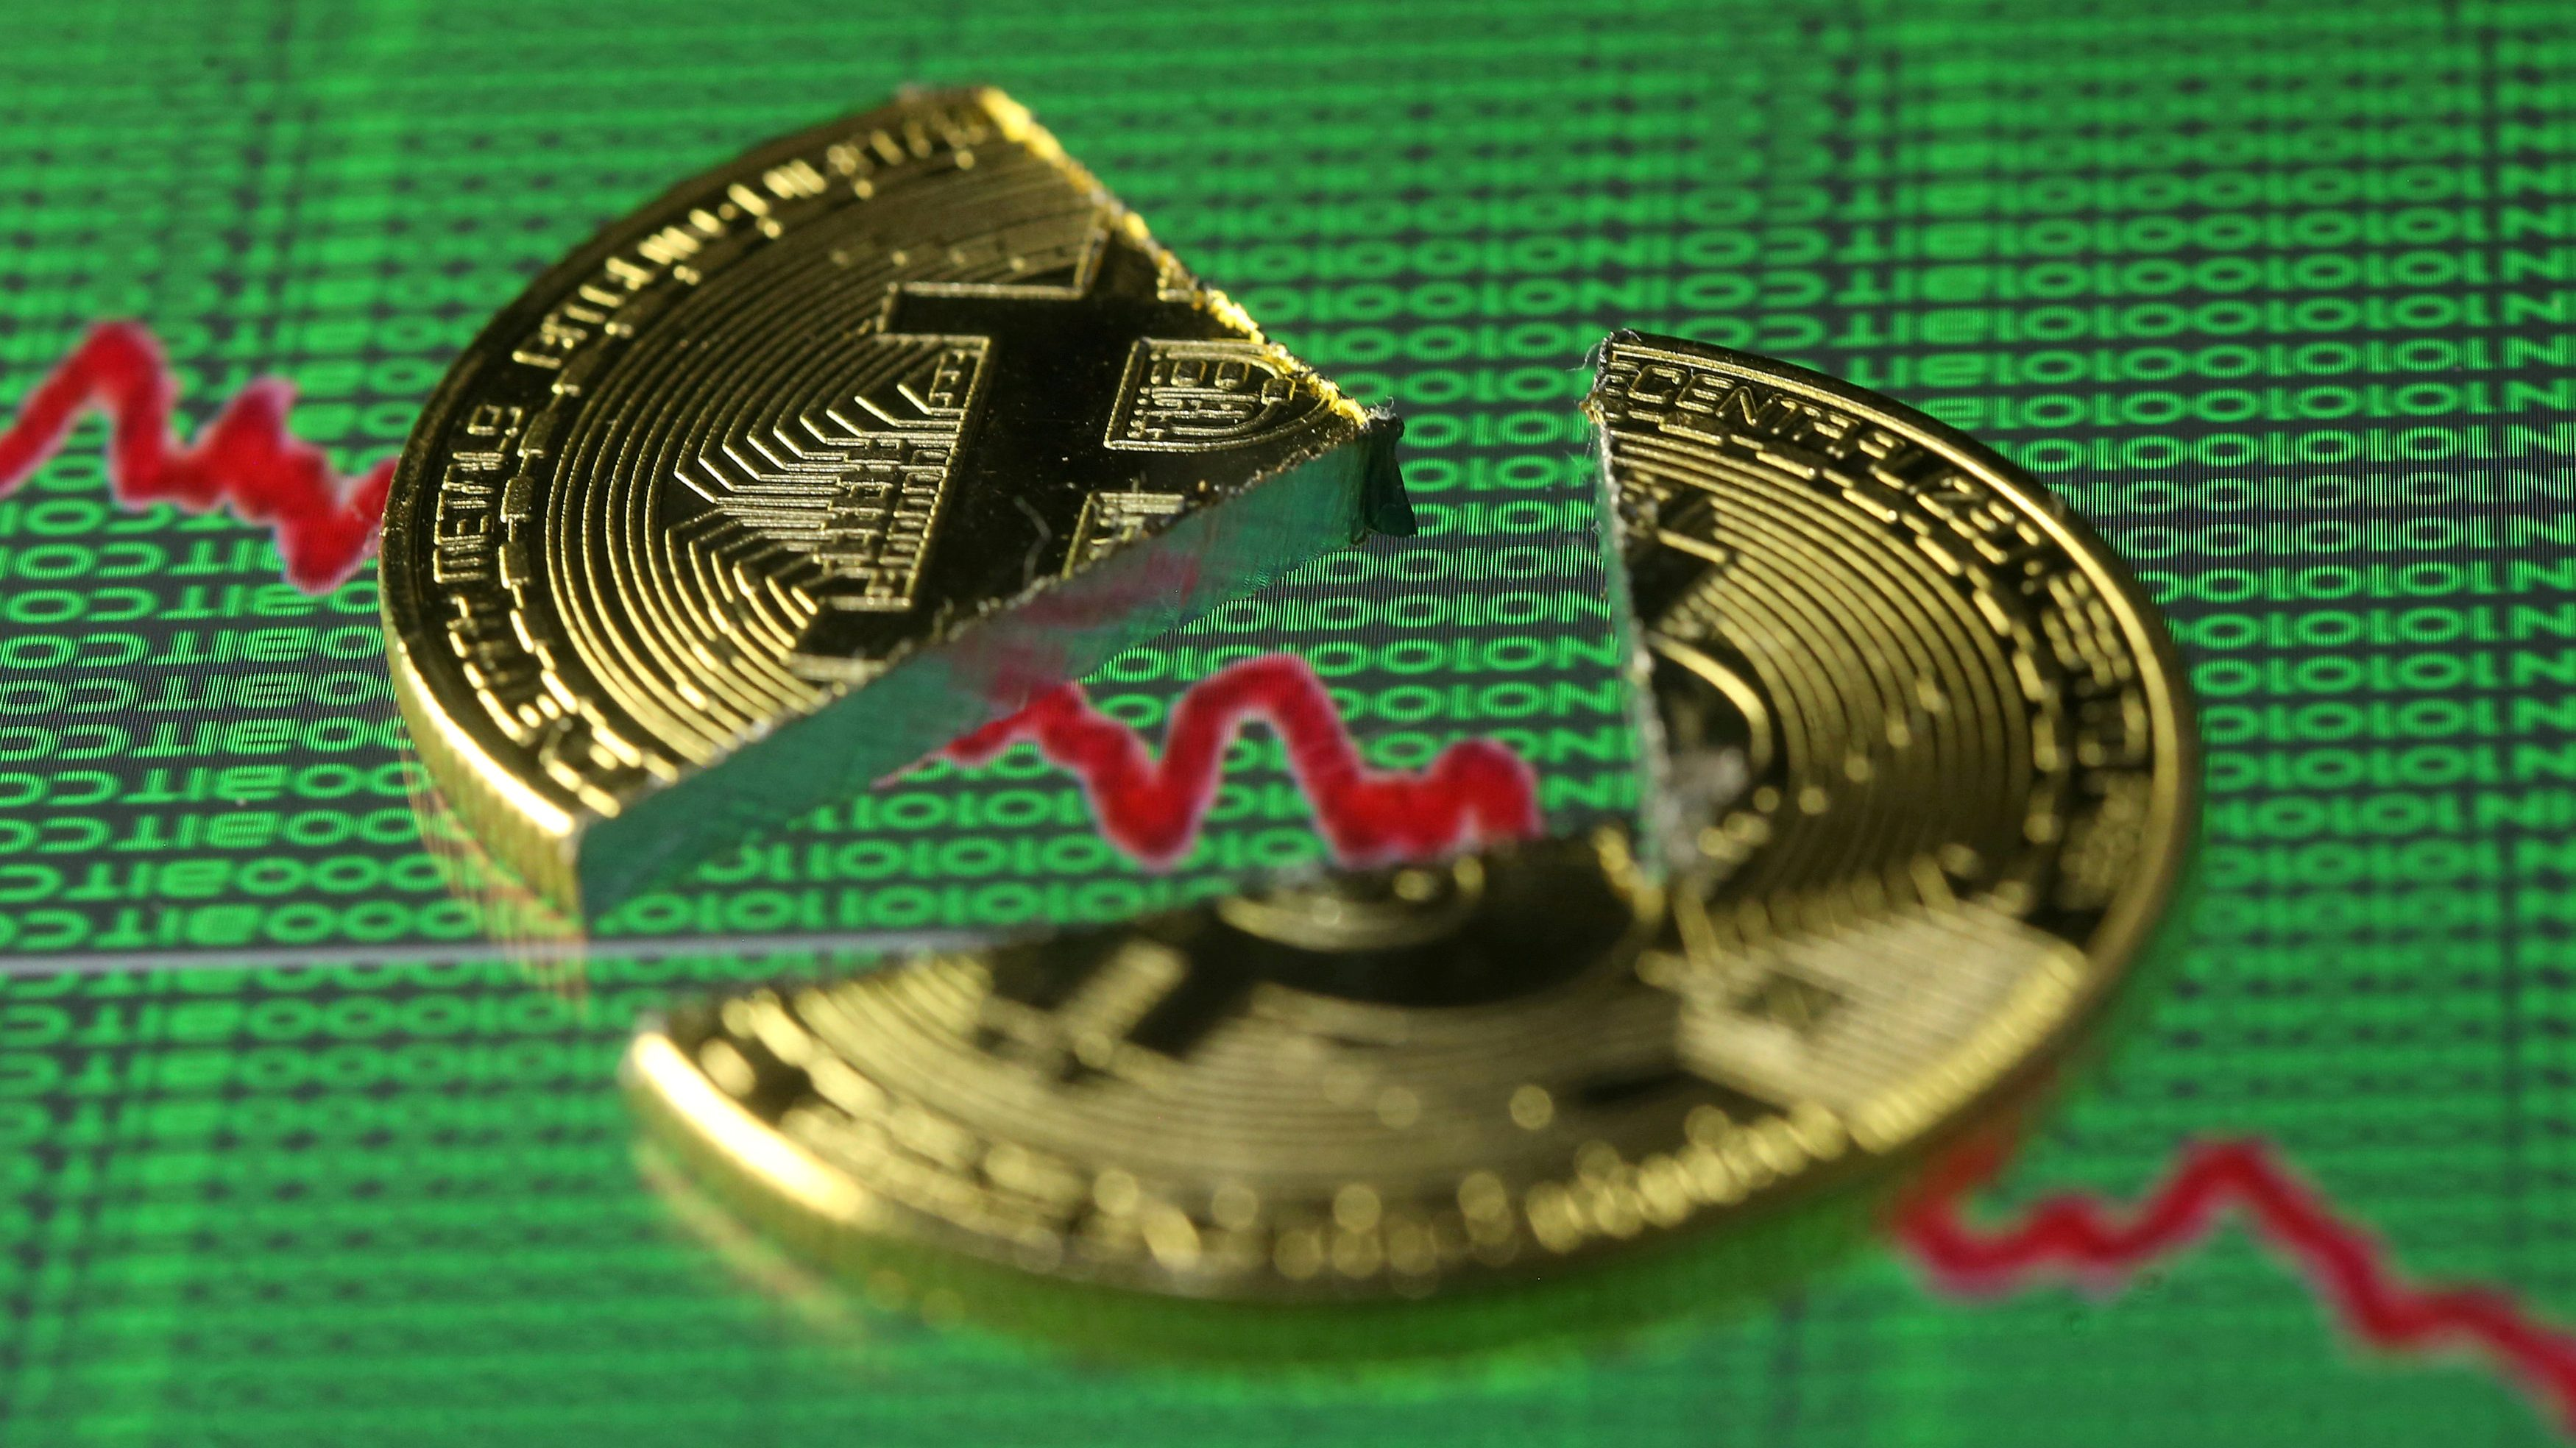 FILE PHOTO: Broken representation of the Bitcoin virtual currency, placed on a monitor that displays stock graph and binary codes, are seen in this illustration picture, December 21, 2017.